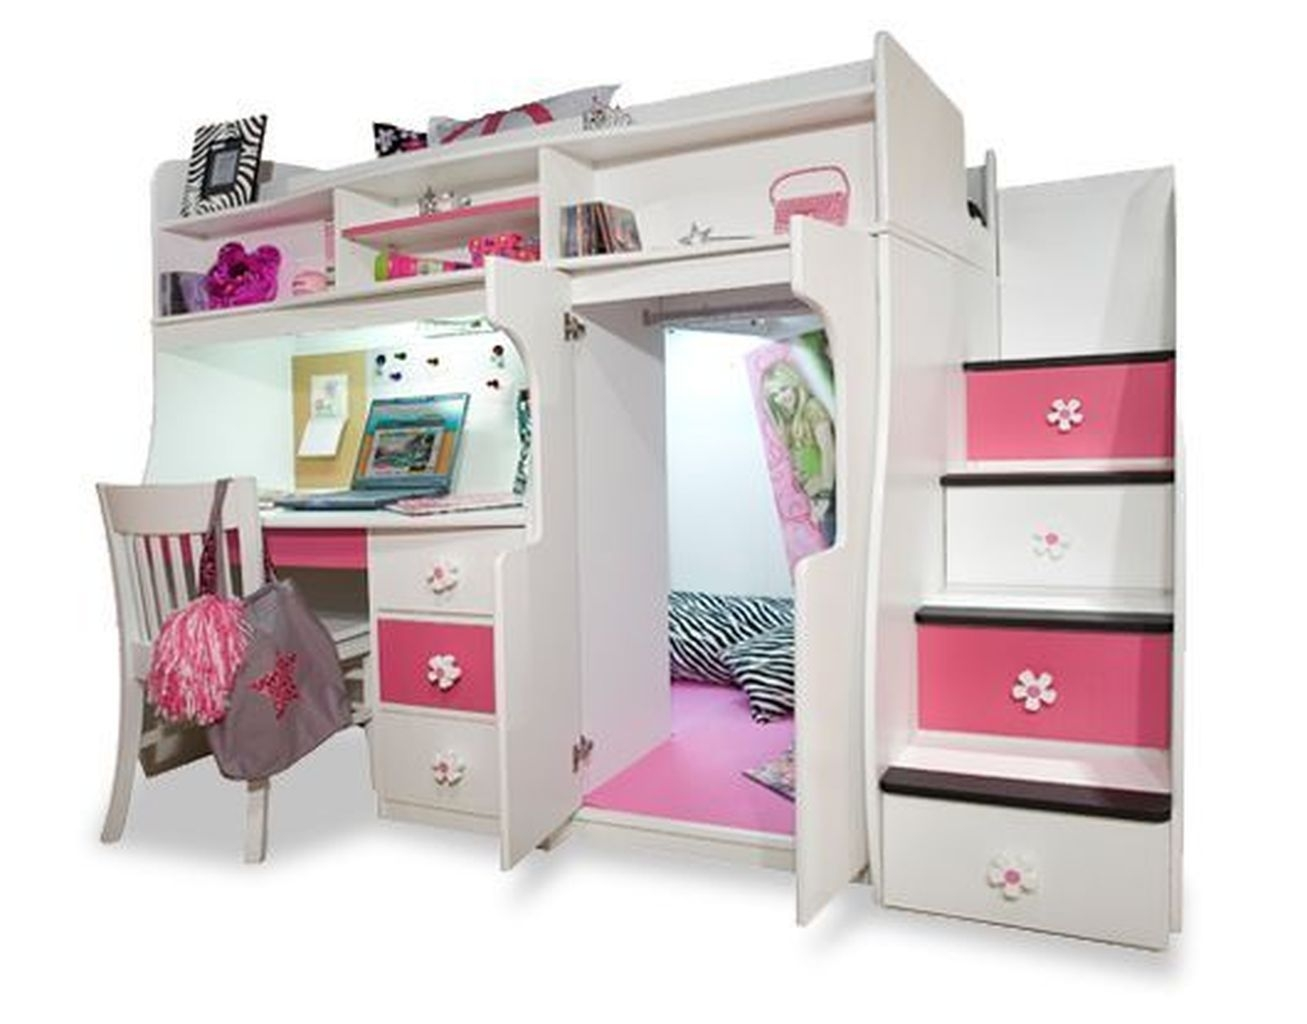 Desk Beds For Girls Cheaper Than Retail Price Buy Clothing Accessories And Lifestyle Products For Women Men